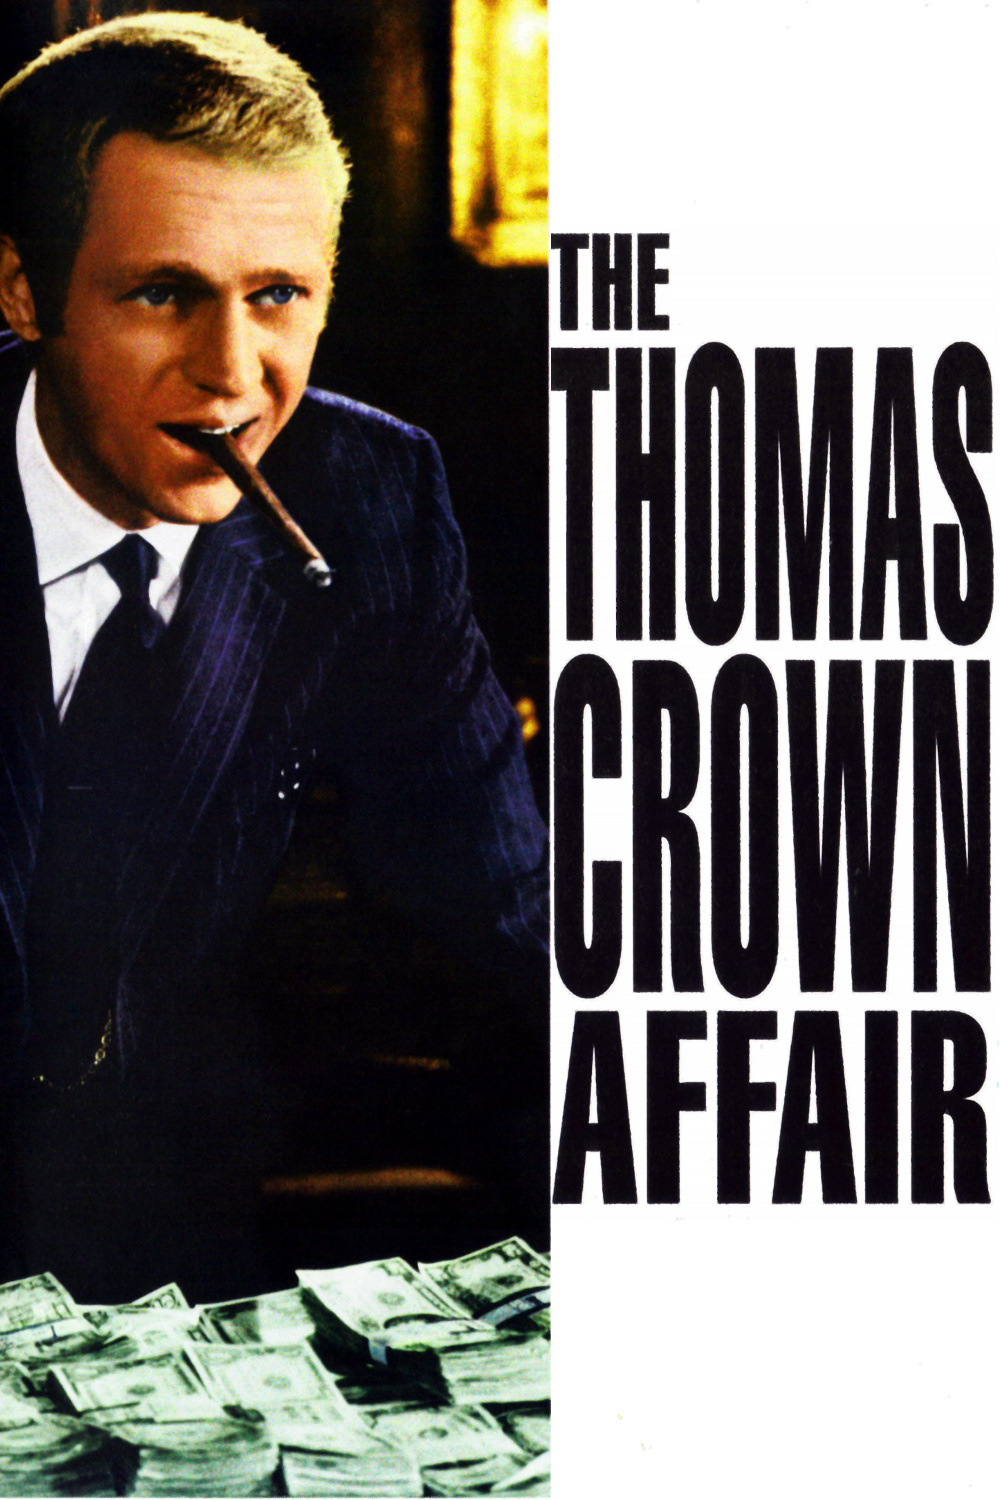 Listen to Music From The Thomas Crown Affair now.